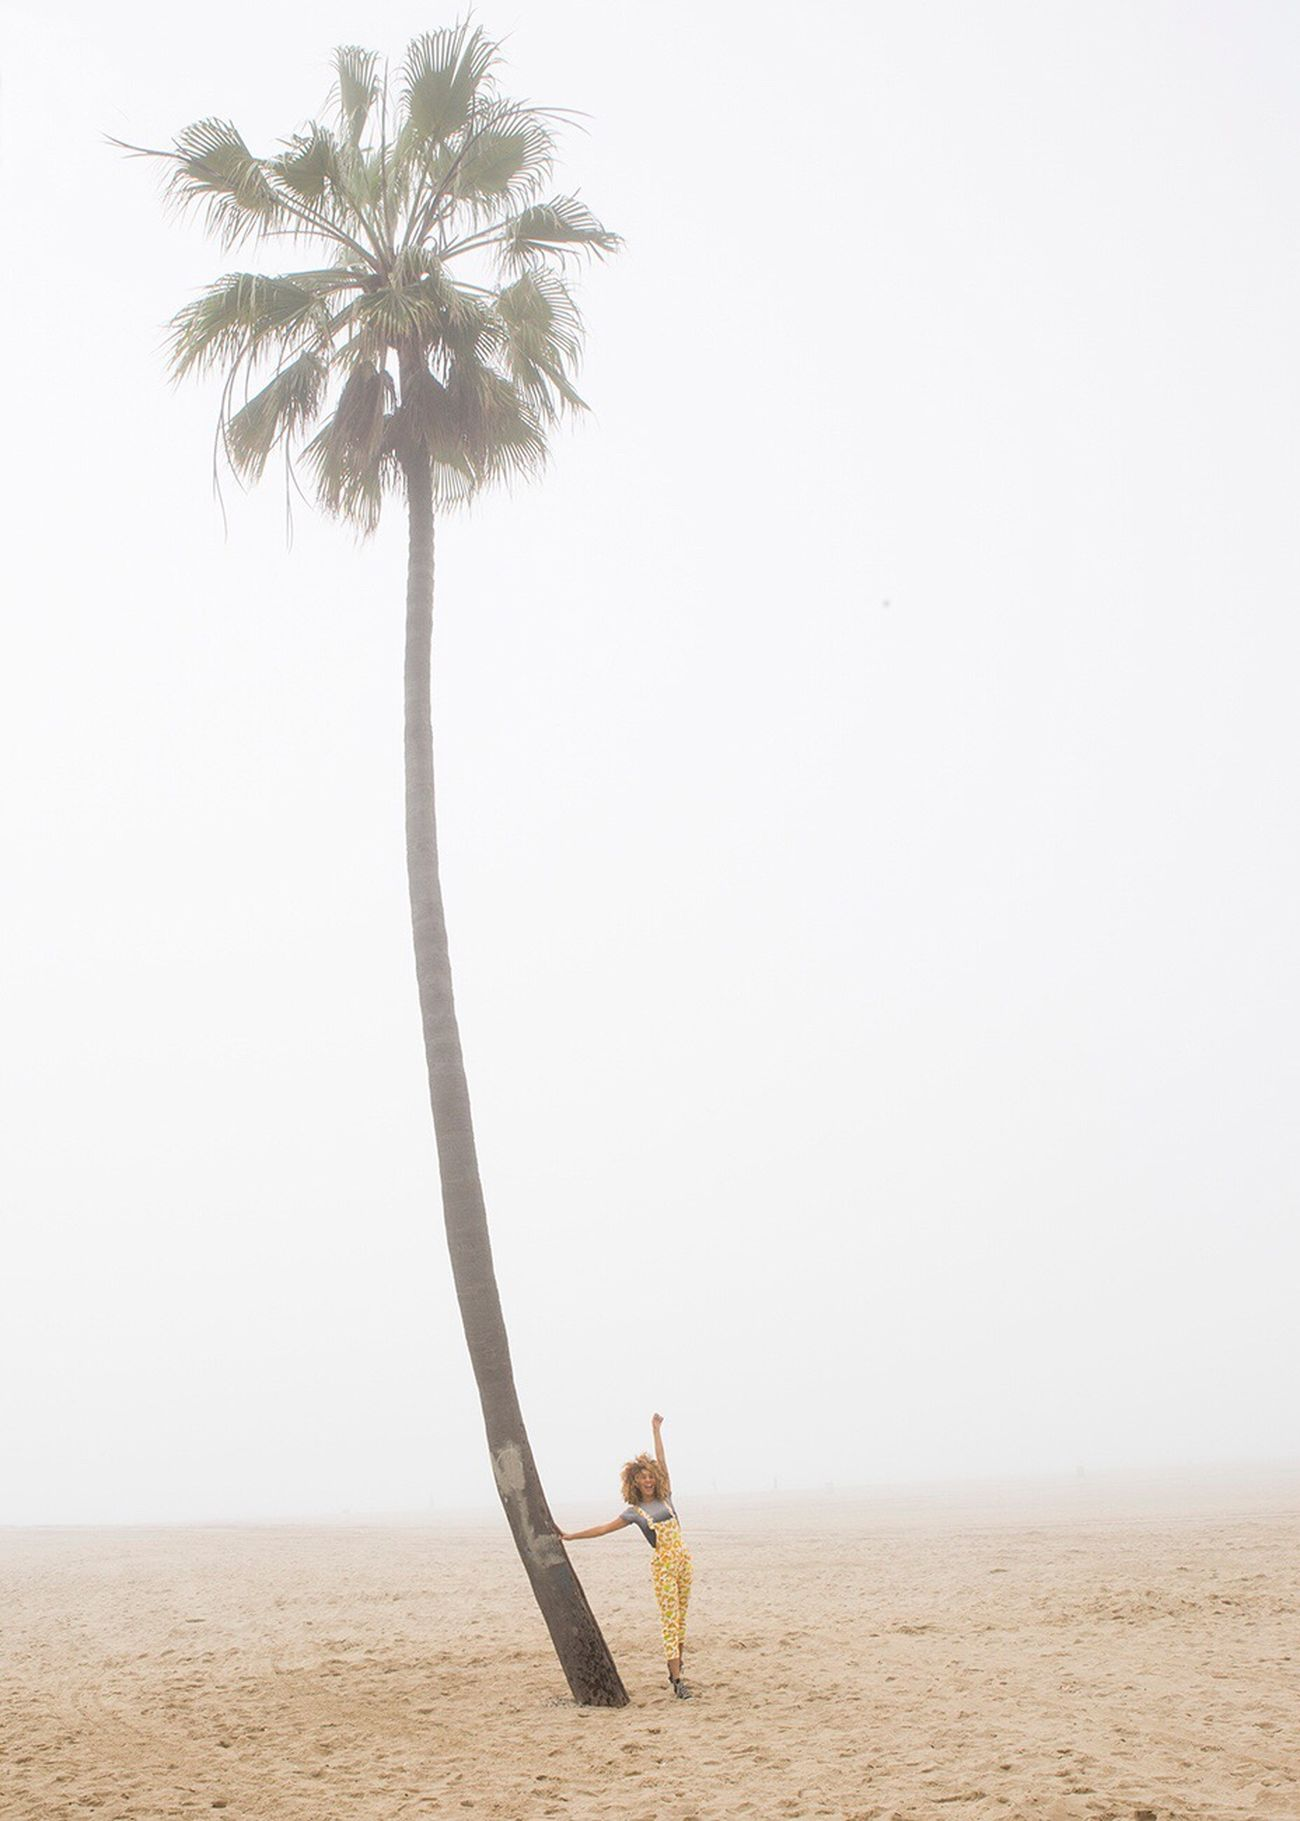 sand, beach, palm tree, one person, day